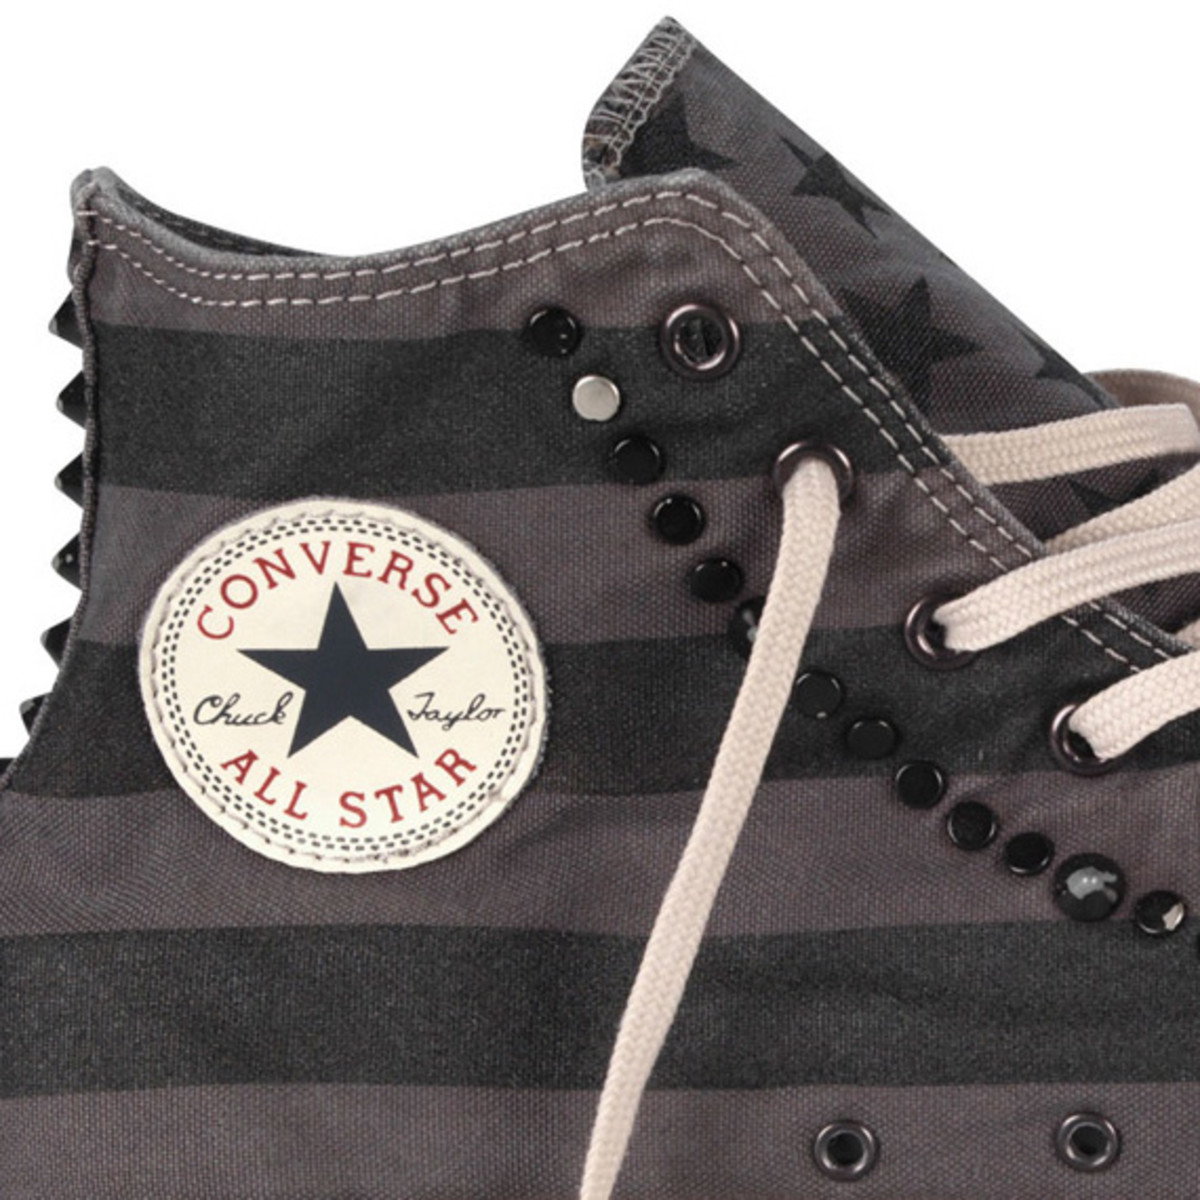 converse-chuck-taylor-all-star-collar-studs-fall-2013-collection-19